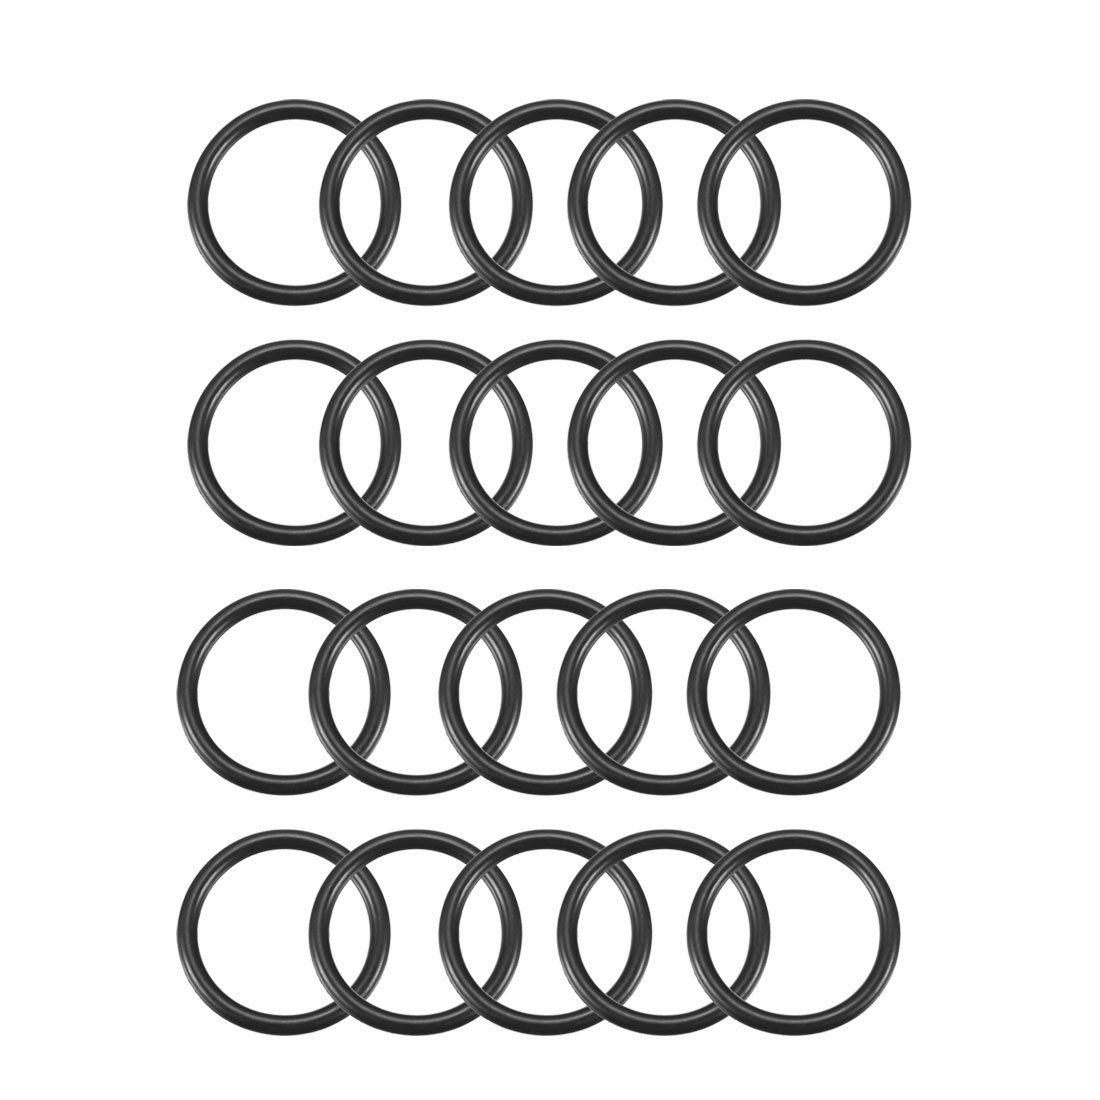 20 Pcs Flexible Rubber O Ring Seal Gasket 29mm x 36mm x 3.5mm